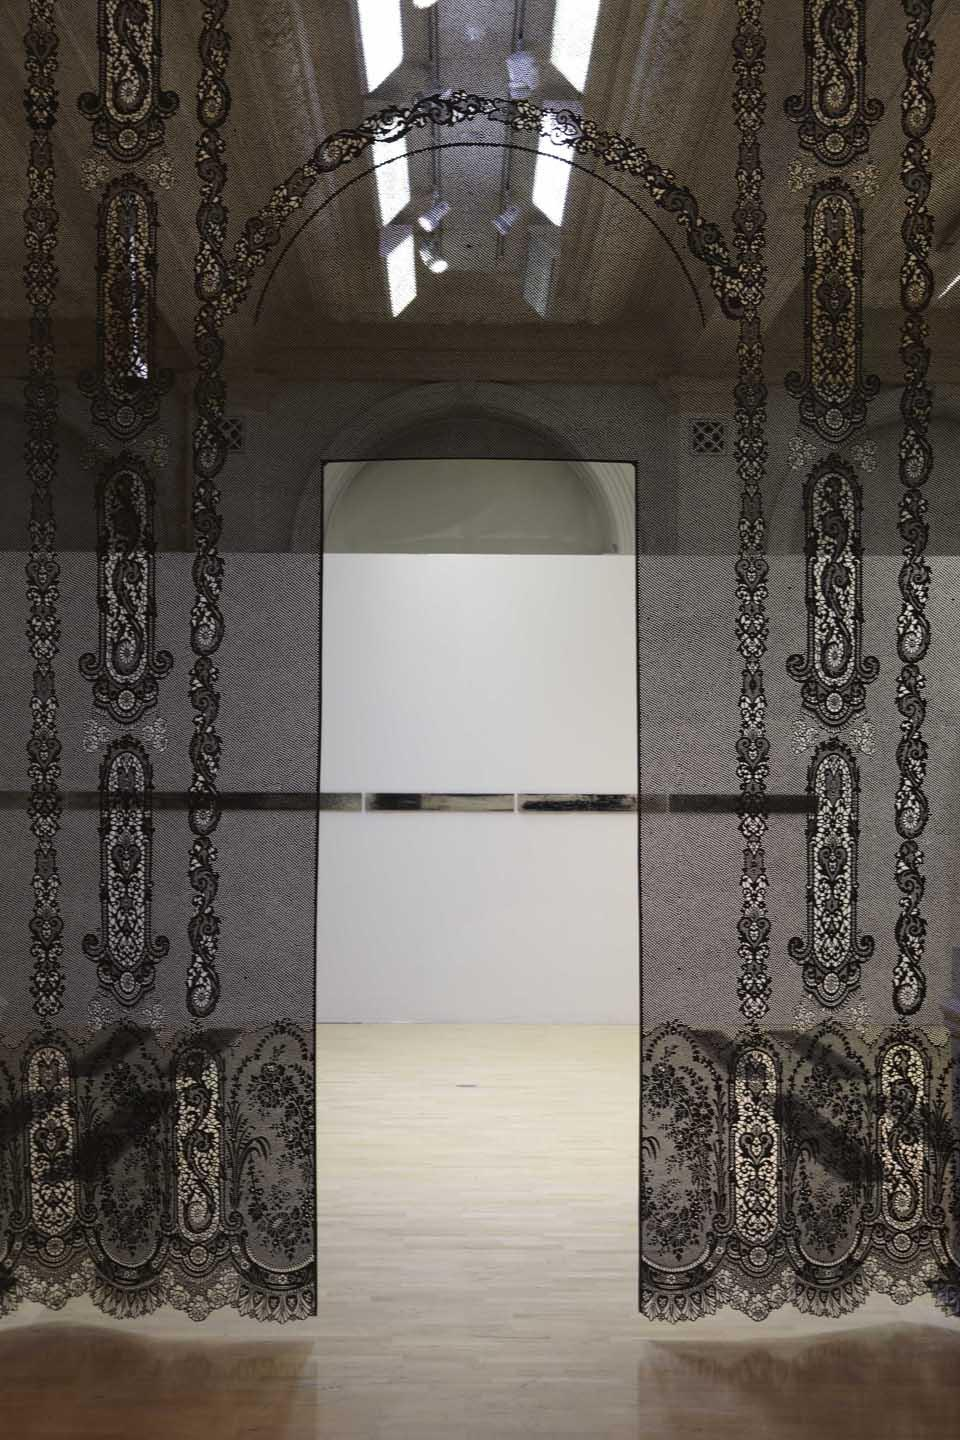 Piper Shepard (USA) has taken a piece of historic point de gaze lace from the BMAG